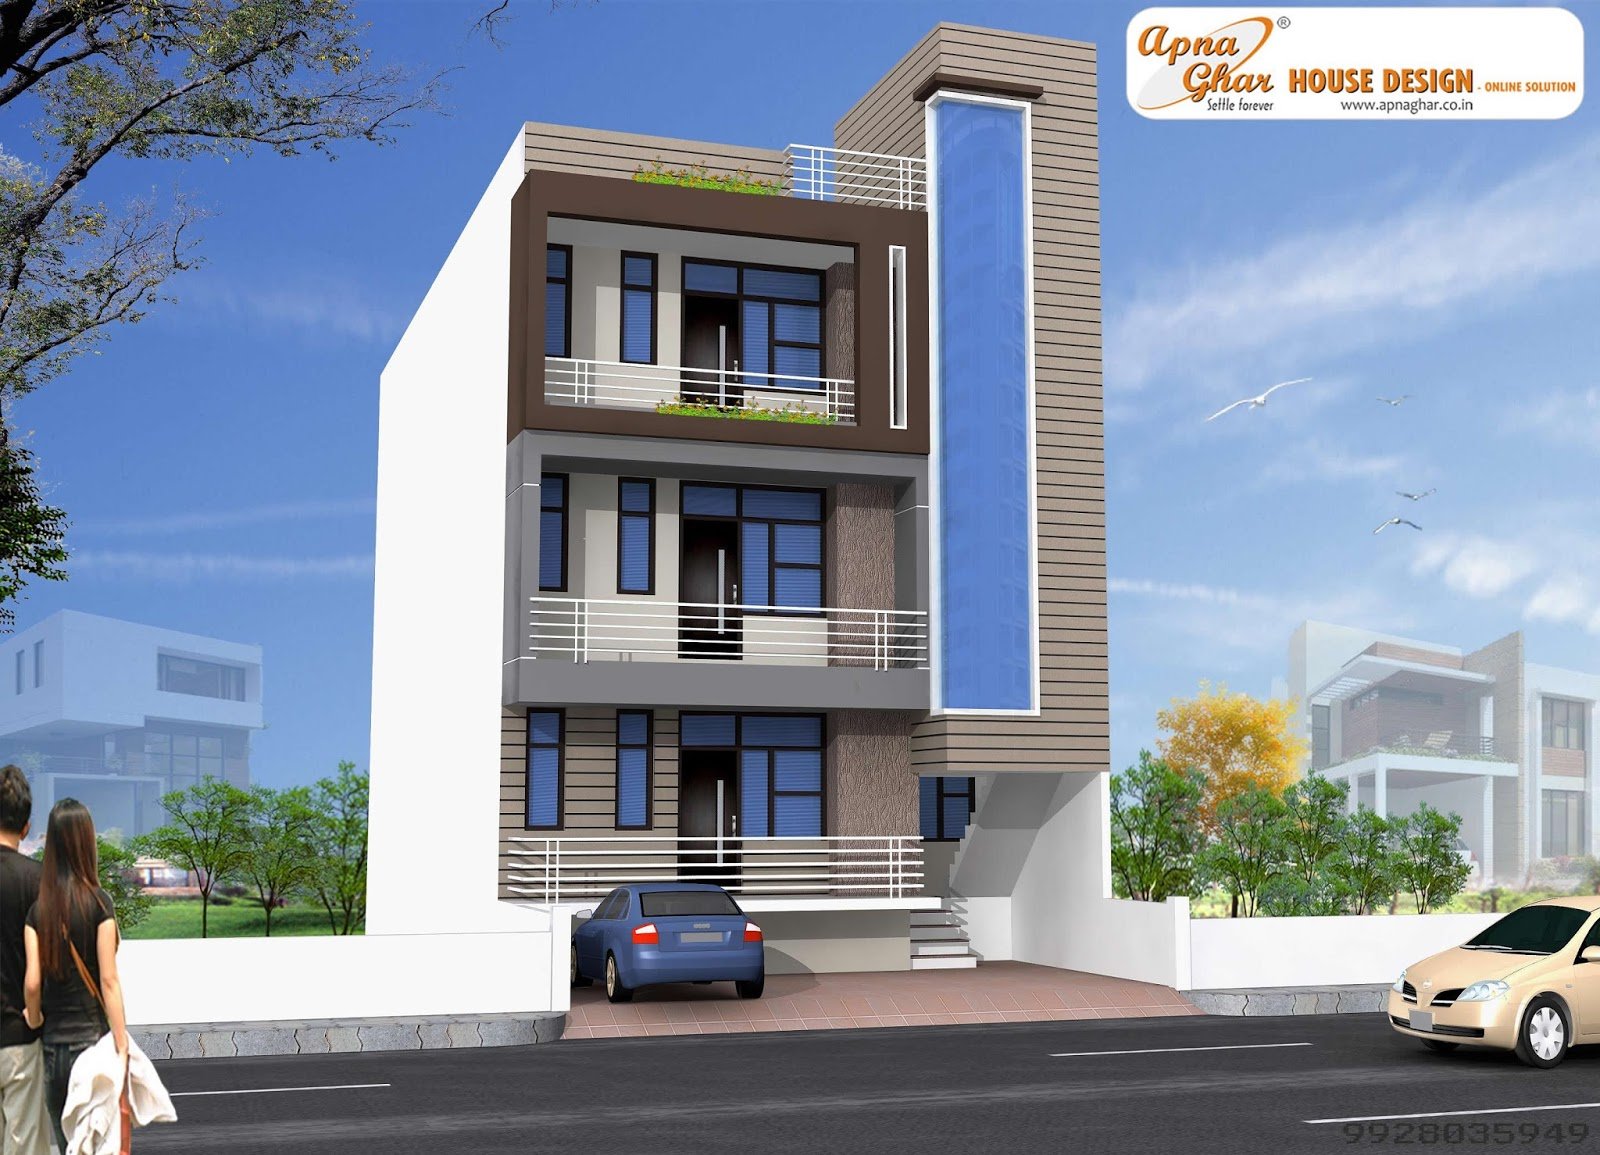 View Plan : http://apnaghar.co.in/house-design-307.aspx